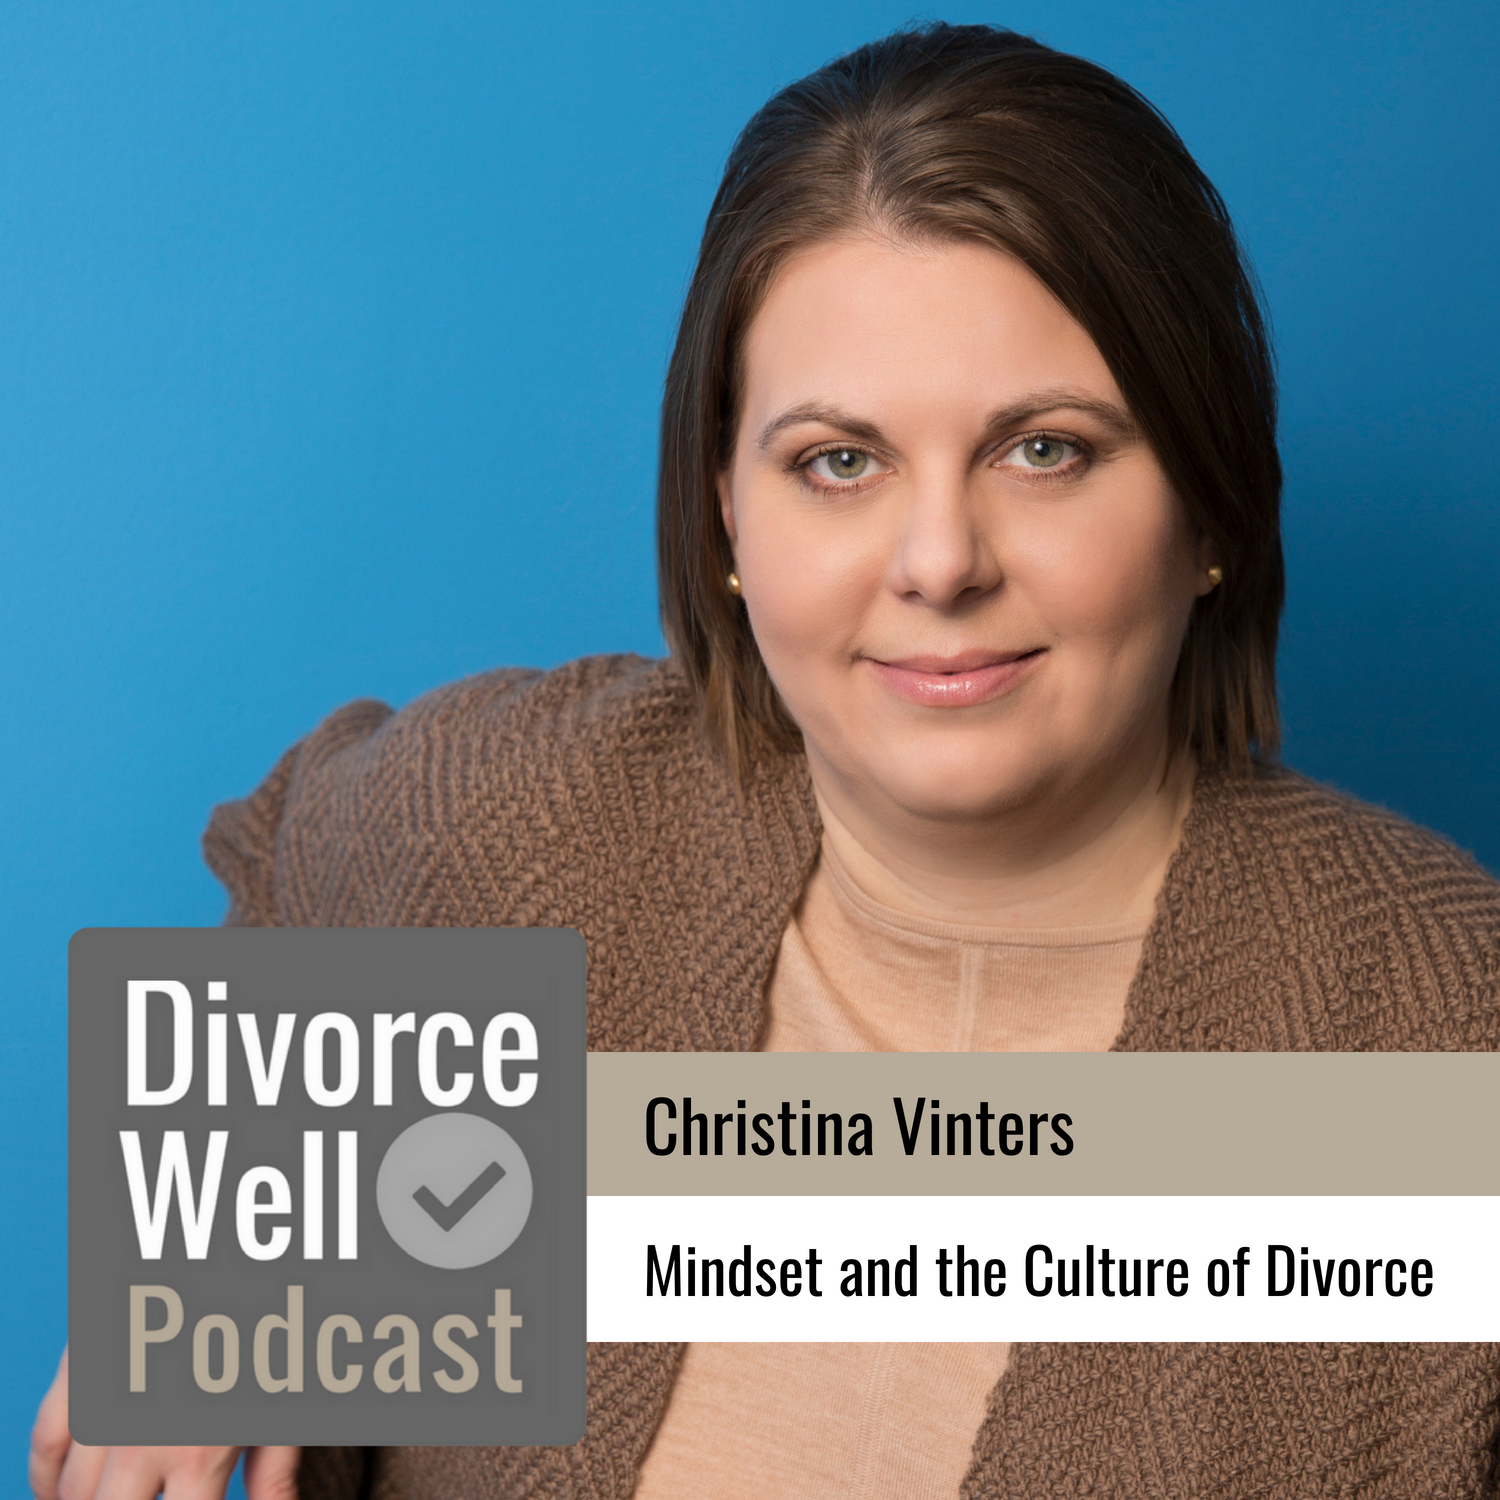 Christina Vinters, J.D., Mediator on the Divorce Well Podcast about the Culture of Divorce